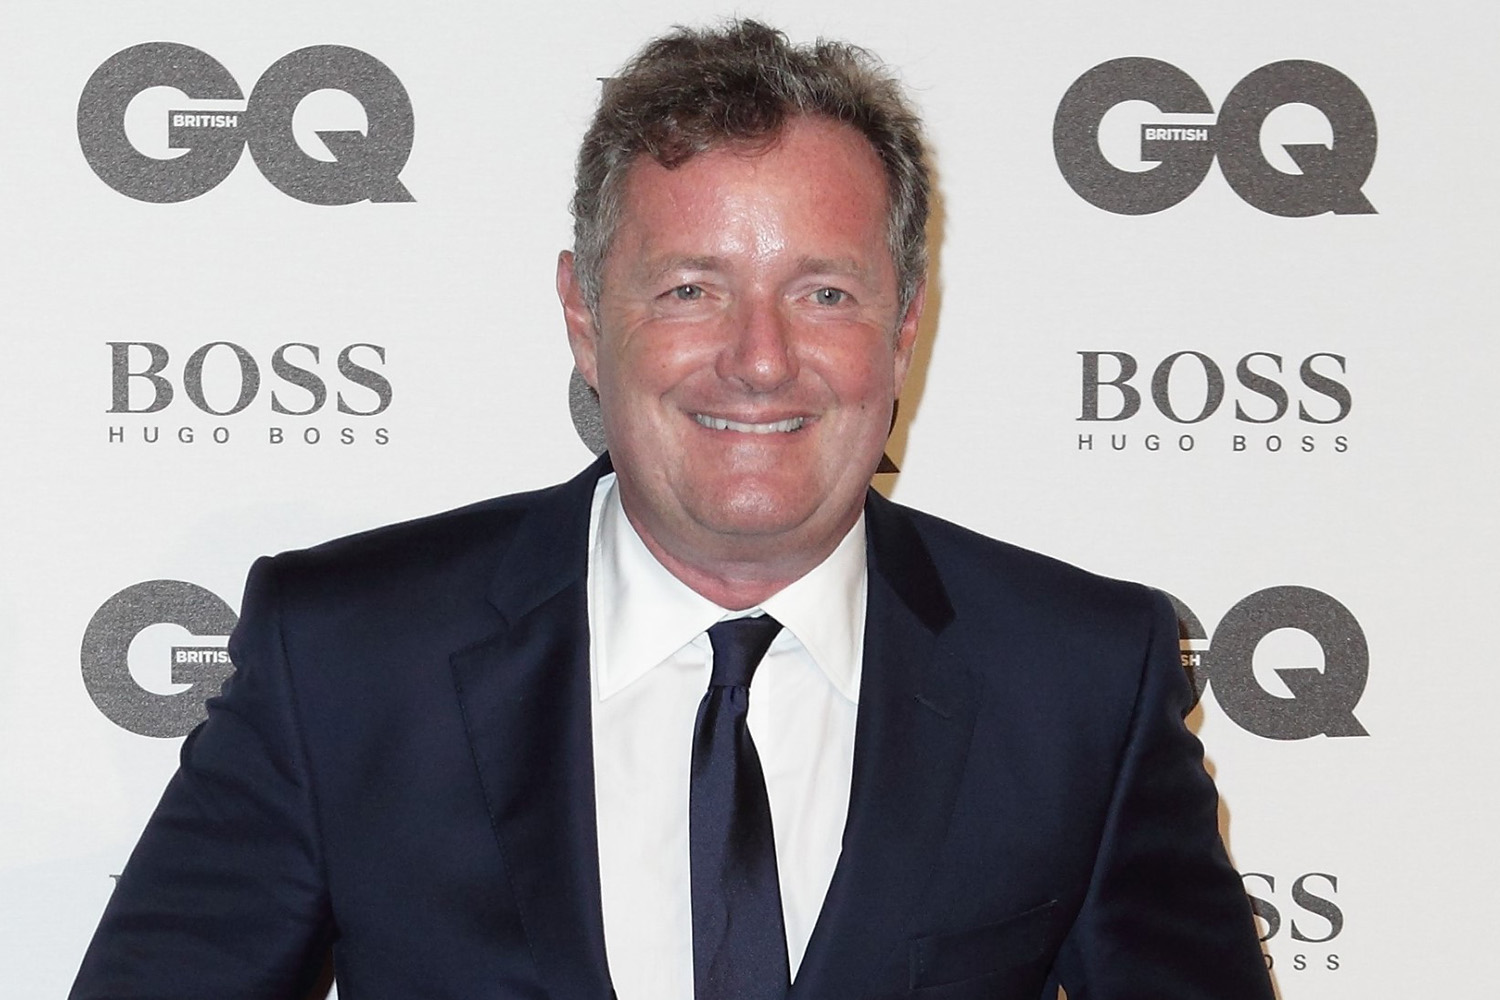 Piers Morgan's fans gush over his 'handsome' dad as he celebrates Father's Day